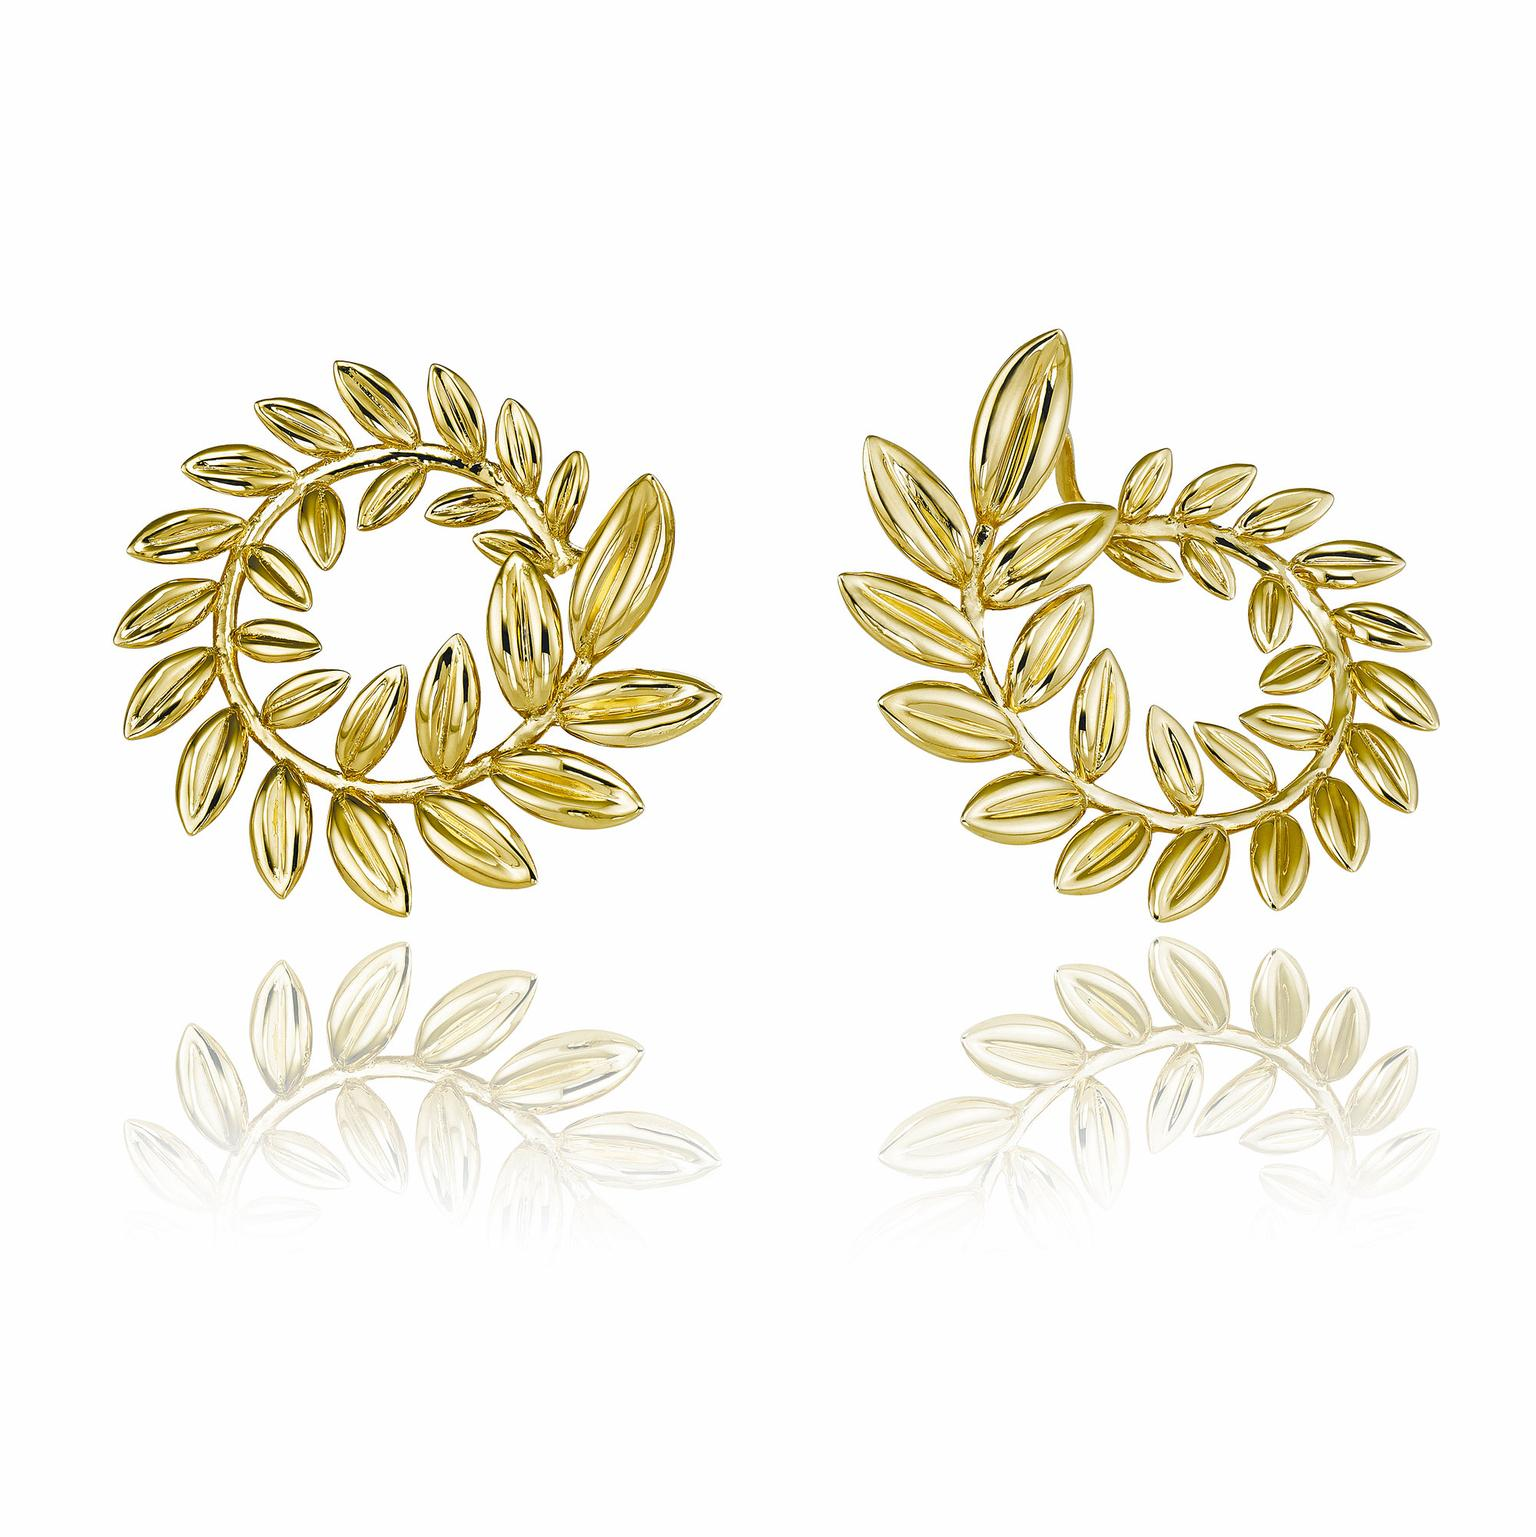 Chopard Fairmined yellow gold earrings